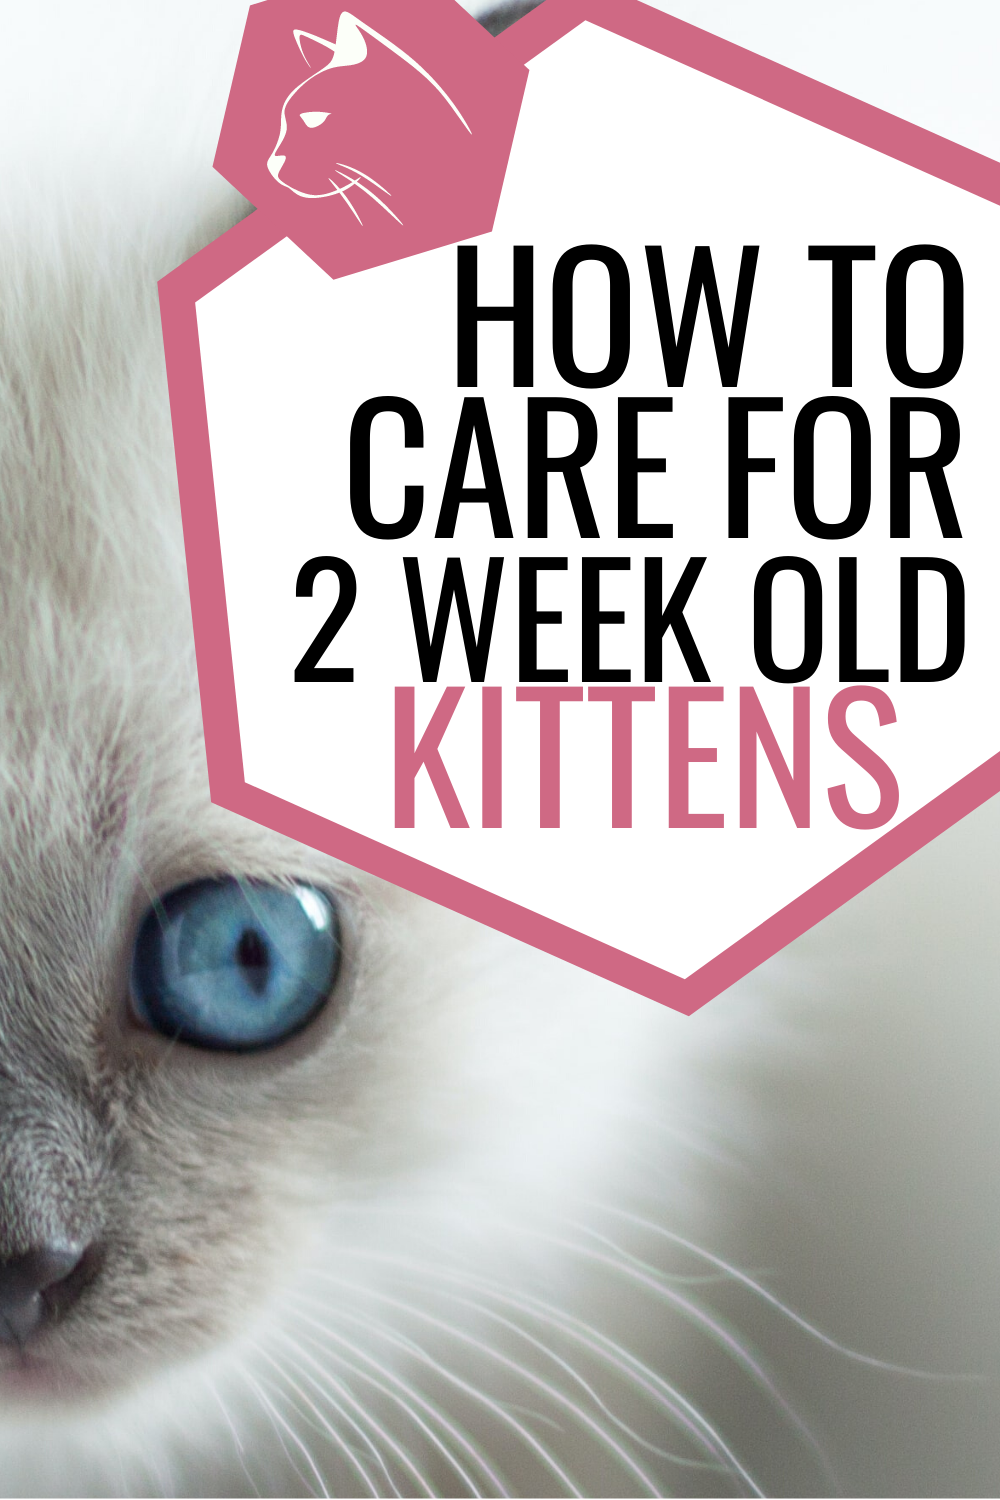 Everything You Need To Know About 2 Week Old Kittens In 2020